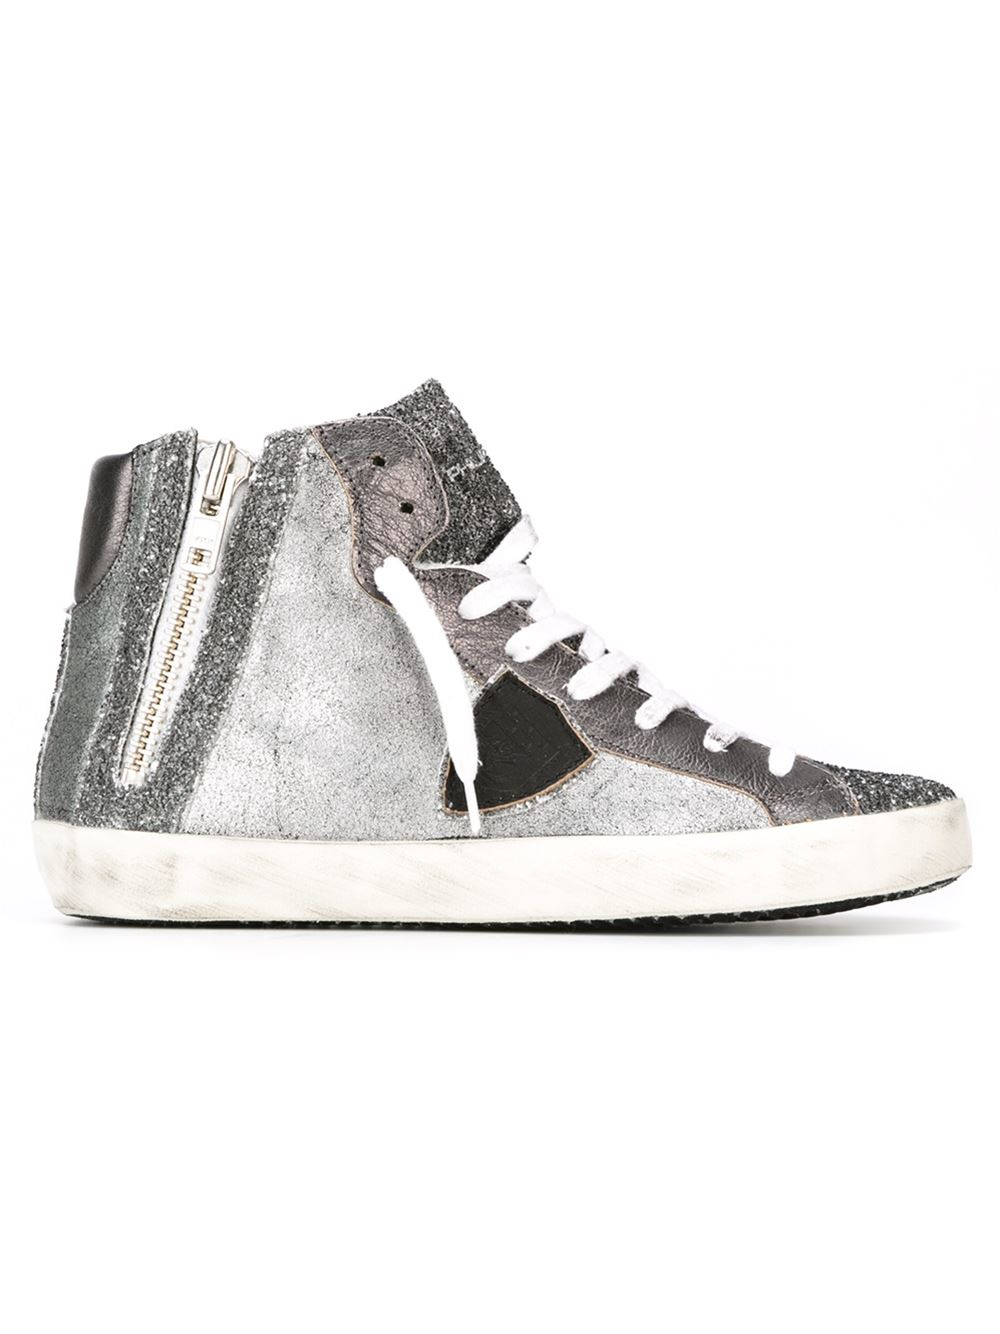 Philippe Model hi-top sneakers outlet 2015 new cheap sale best wholesale free shipping very cheap 5sMD1KBP